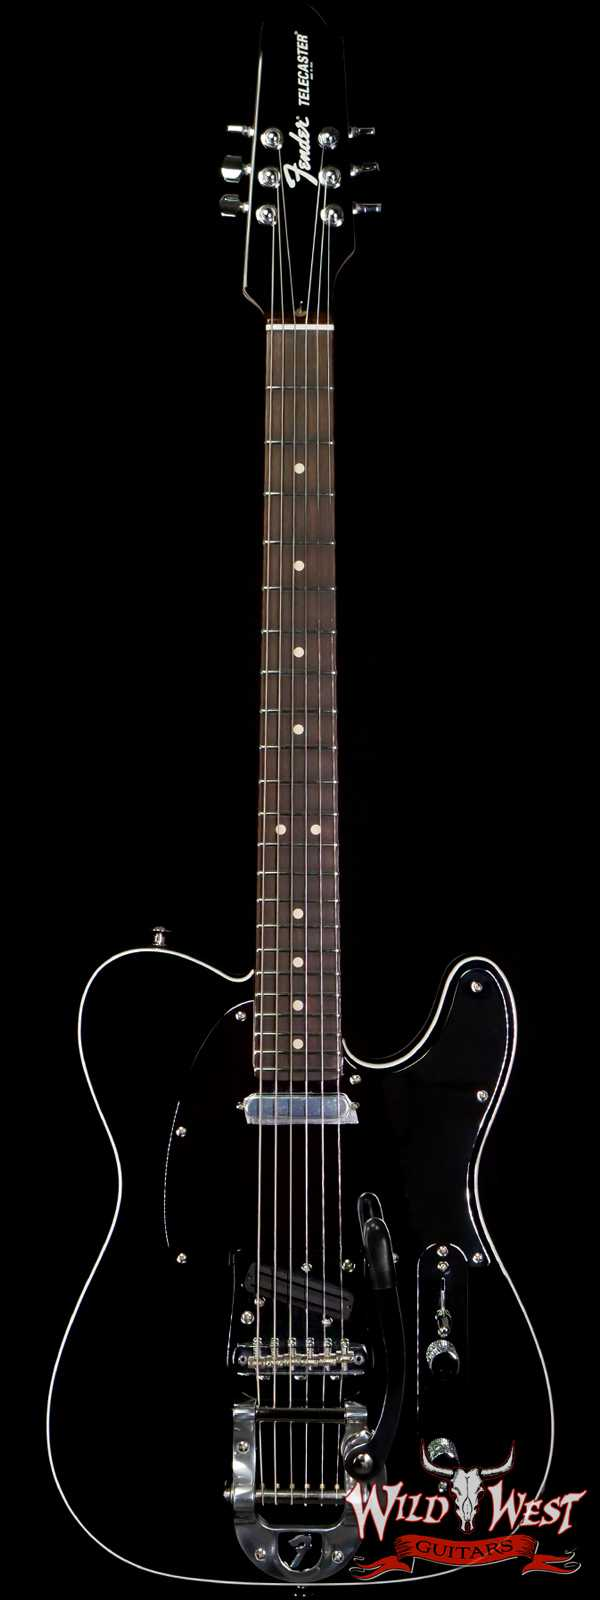 John⑤ Fender Custom Shop John 5 Signature Telecaster with Bigsby Rosewood Fretboard Black